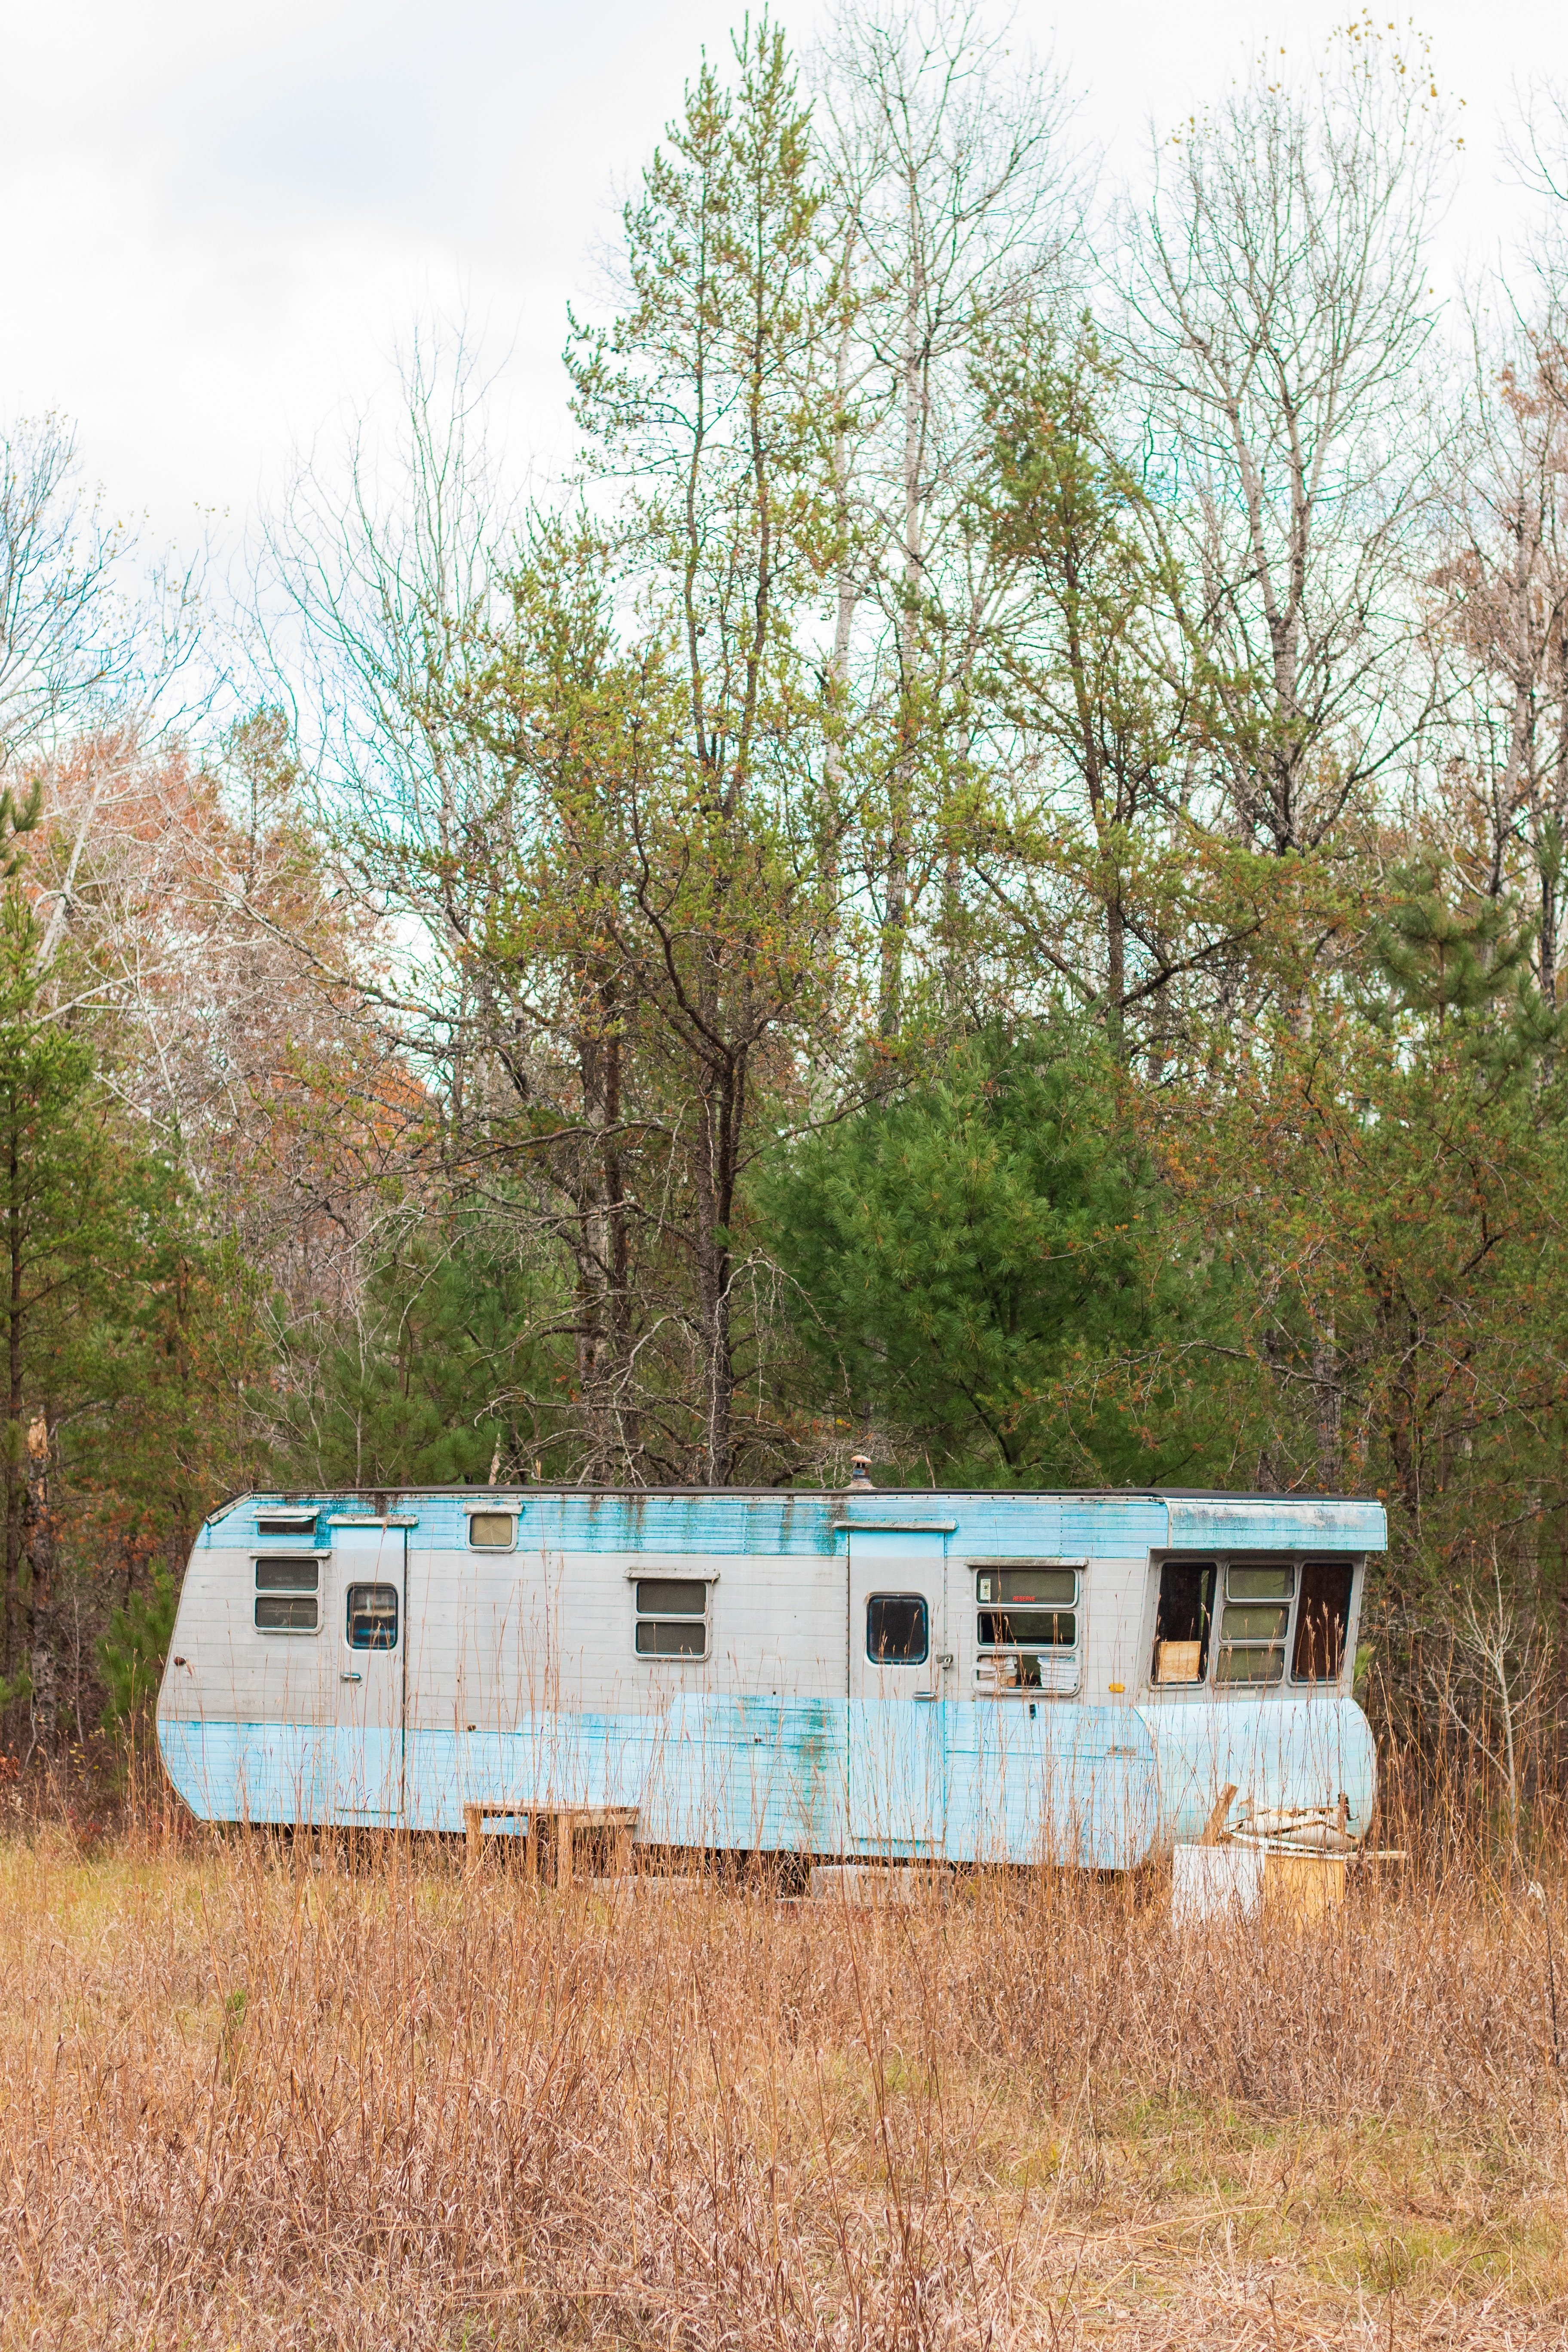 A mobile home in the woods   Source: Unsplash.com